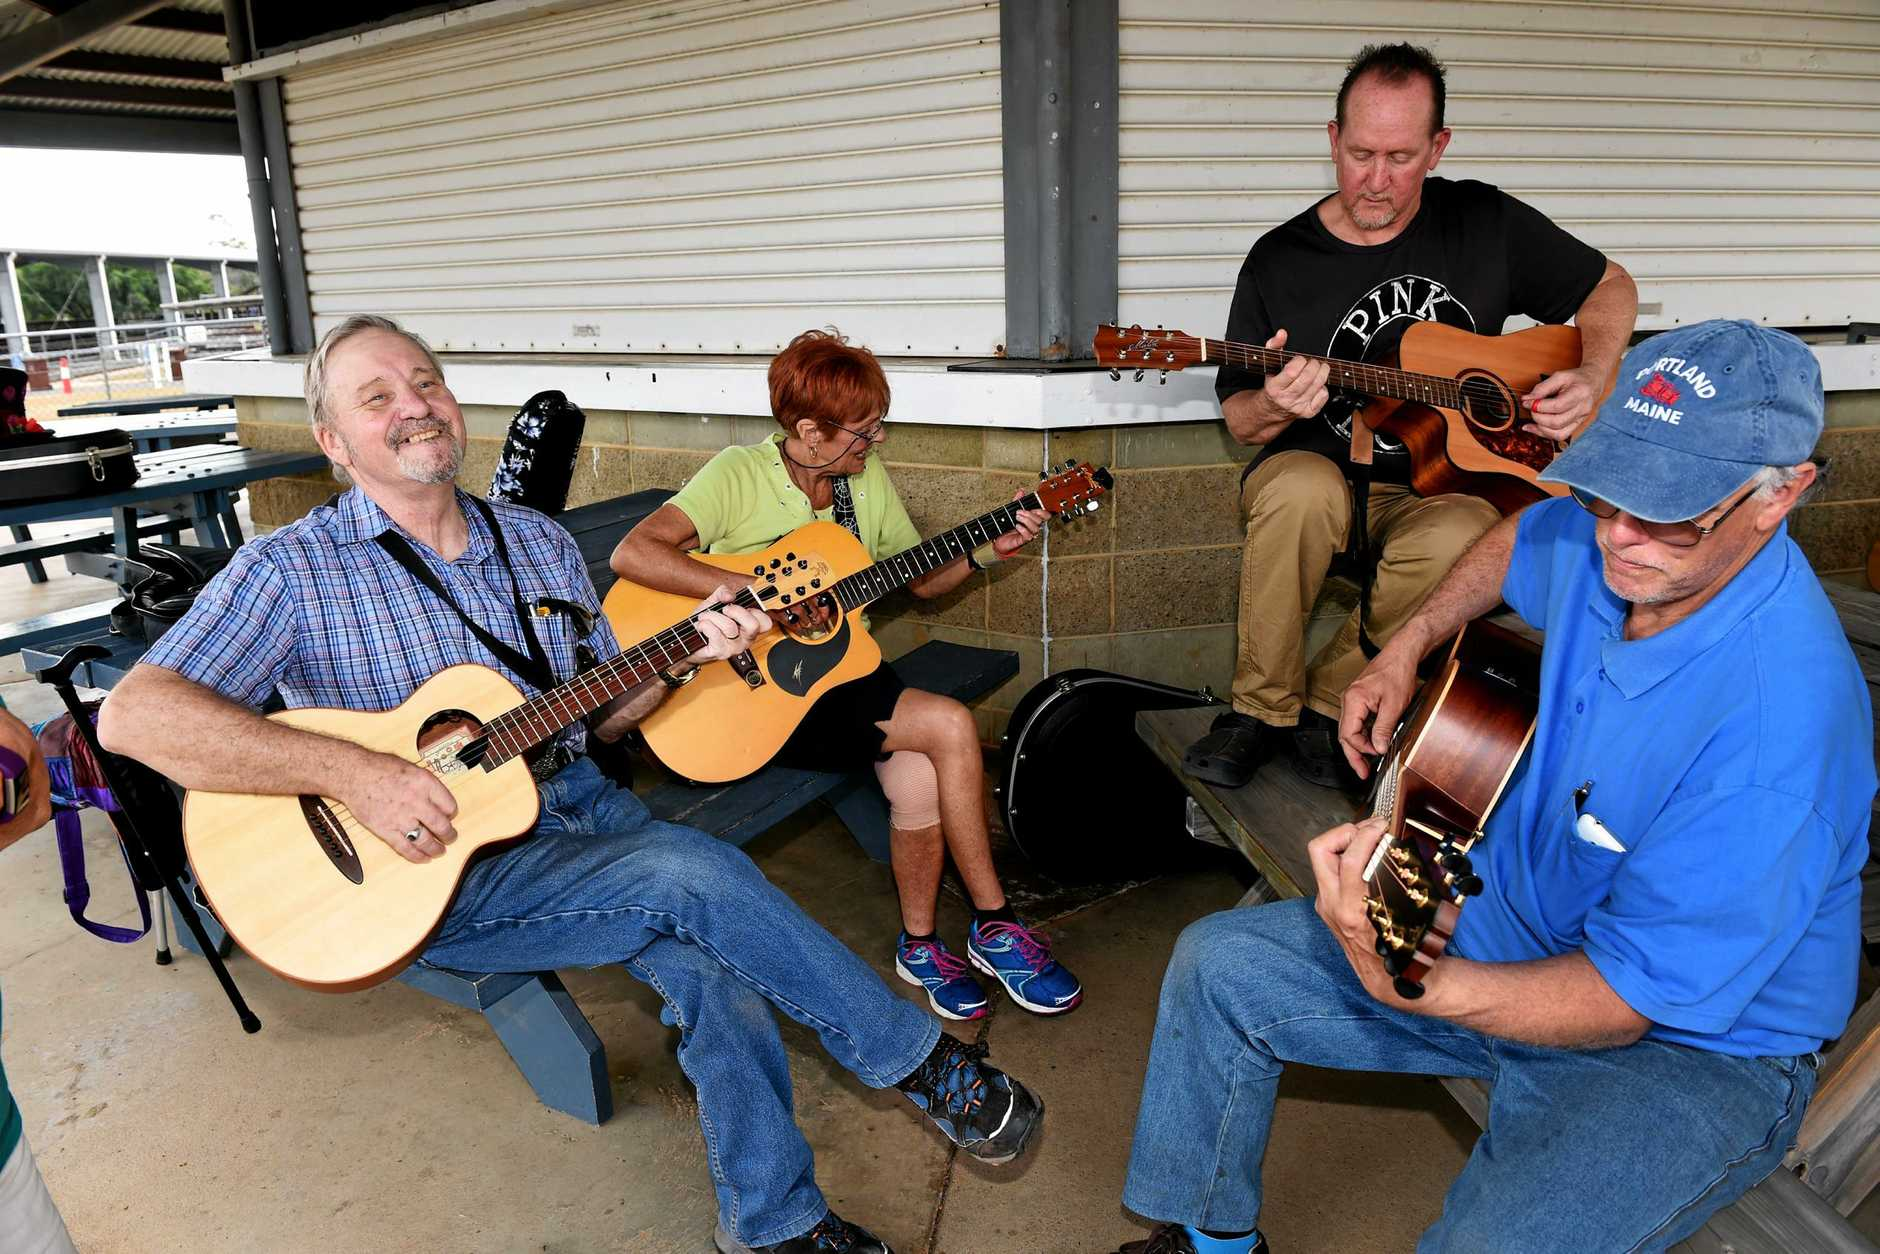 Rob James lead 'Big Bad Bruce' during the guitar workshop at last year's Maryborough Ukulele Muso's retreat at the Maryborough Showgrounds.